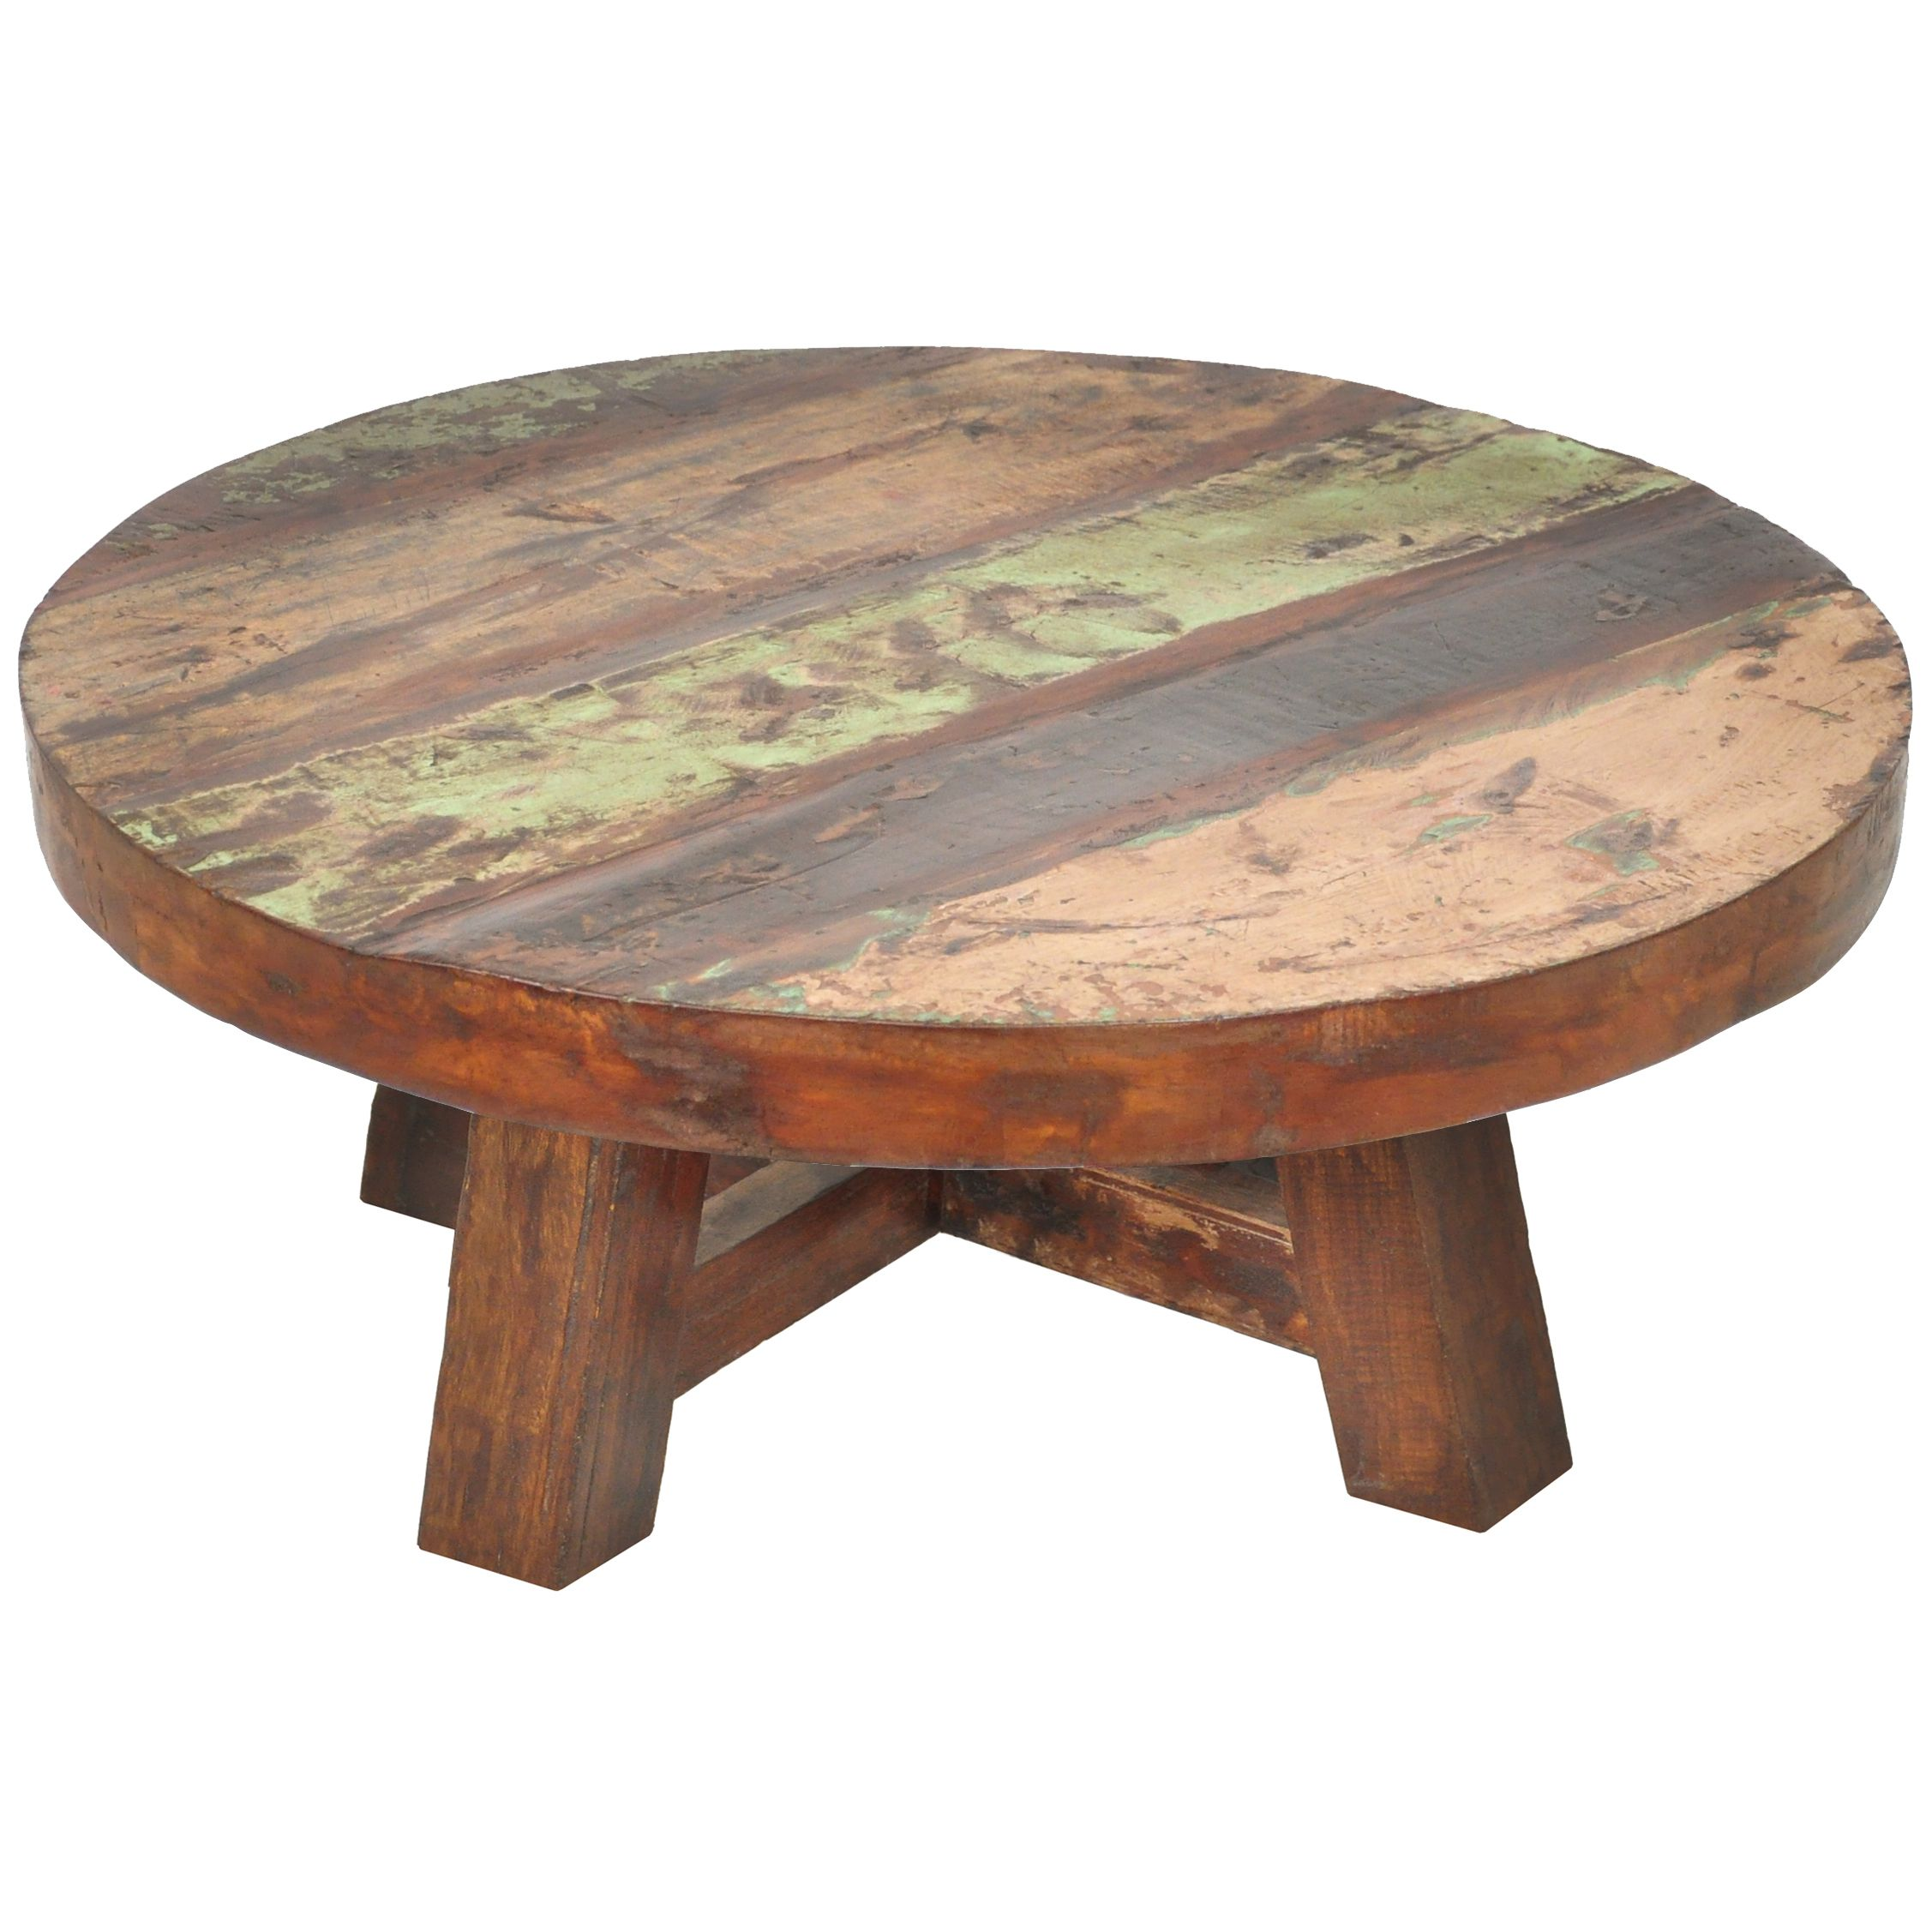 Amazing Design Of The Oak Wooden Rounde Coffe Table Ideas For The Living Room Furniture Ideas